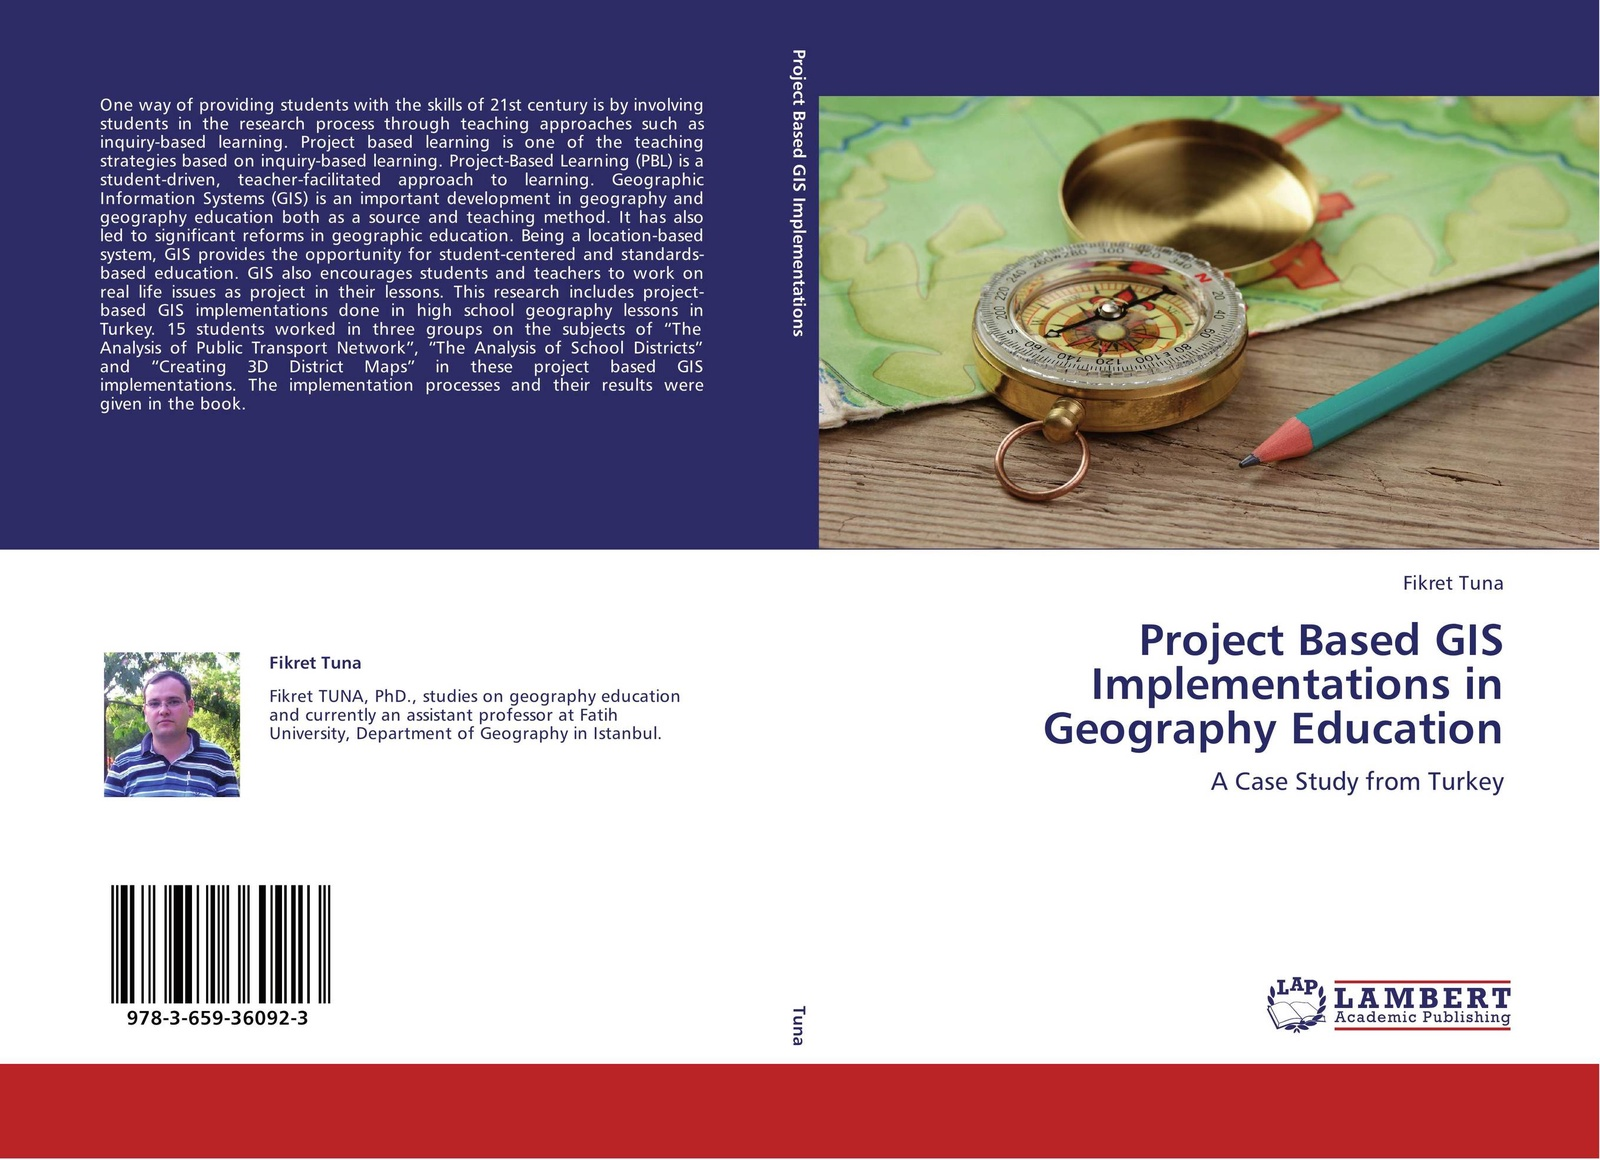 Fikret Tuna Project Based GIS Implementations in Geography Education kathleen susman m discovery based learning in the life sciences